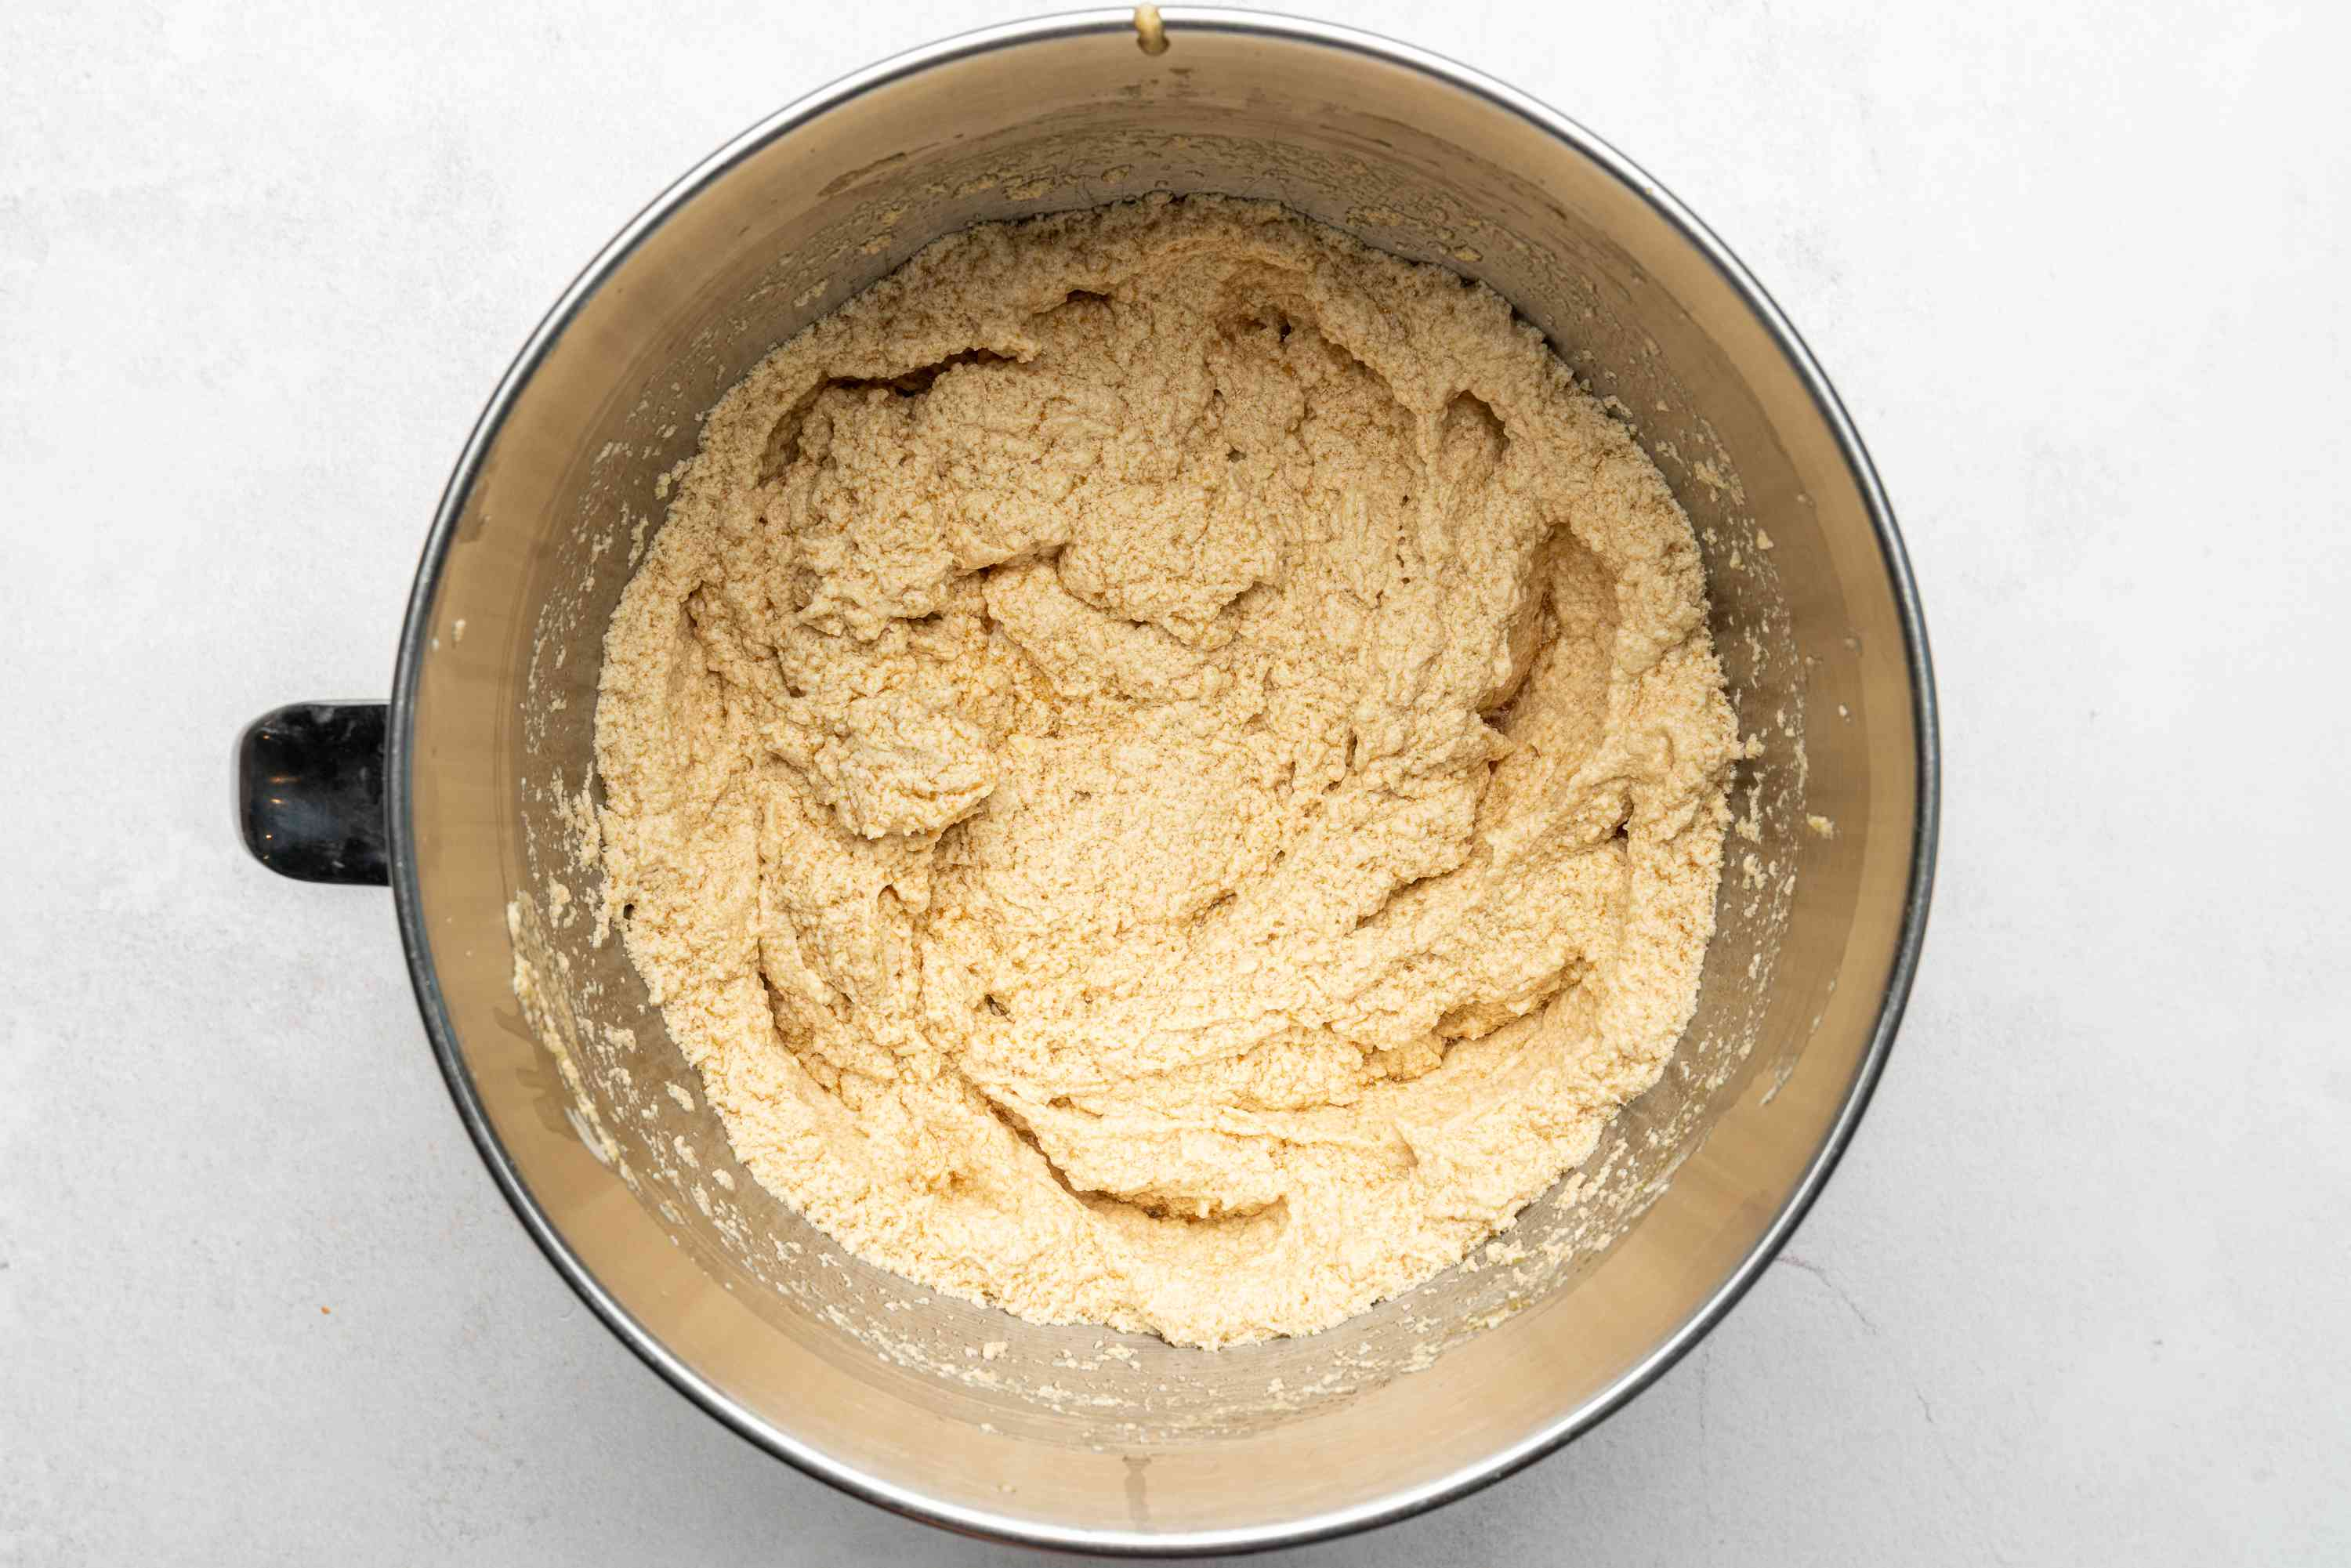 cream the butter, brown sugar, eggs, and flavor extracts in a bowl